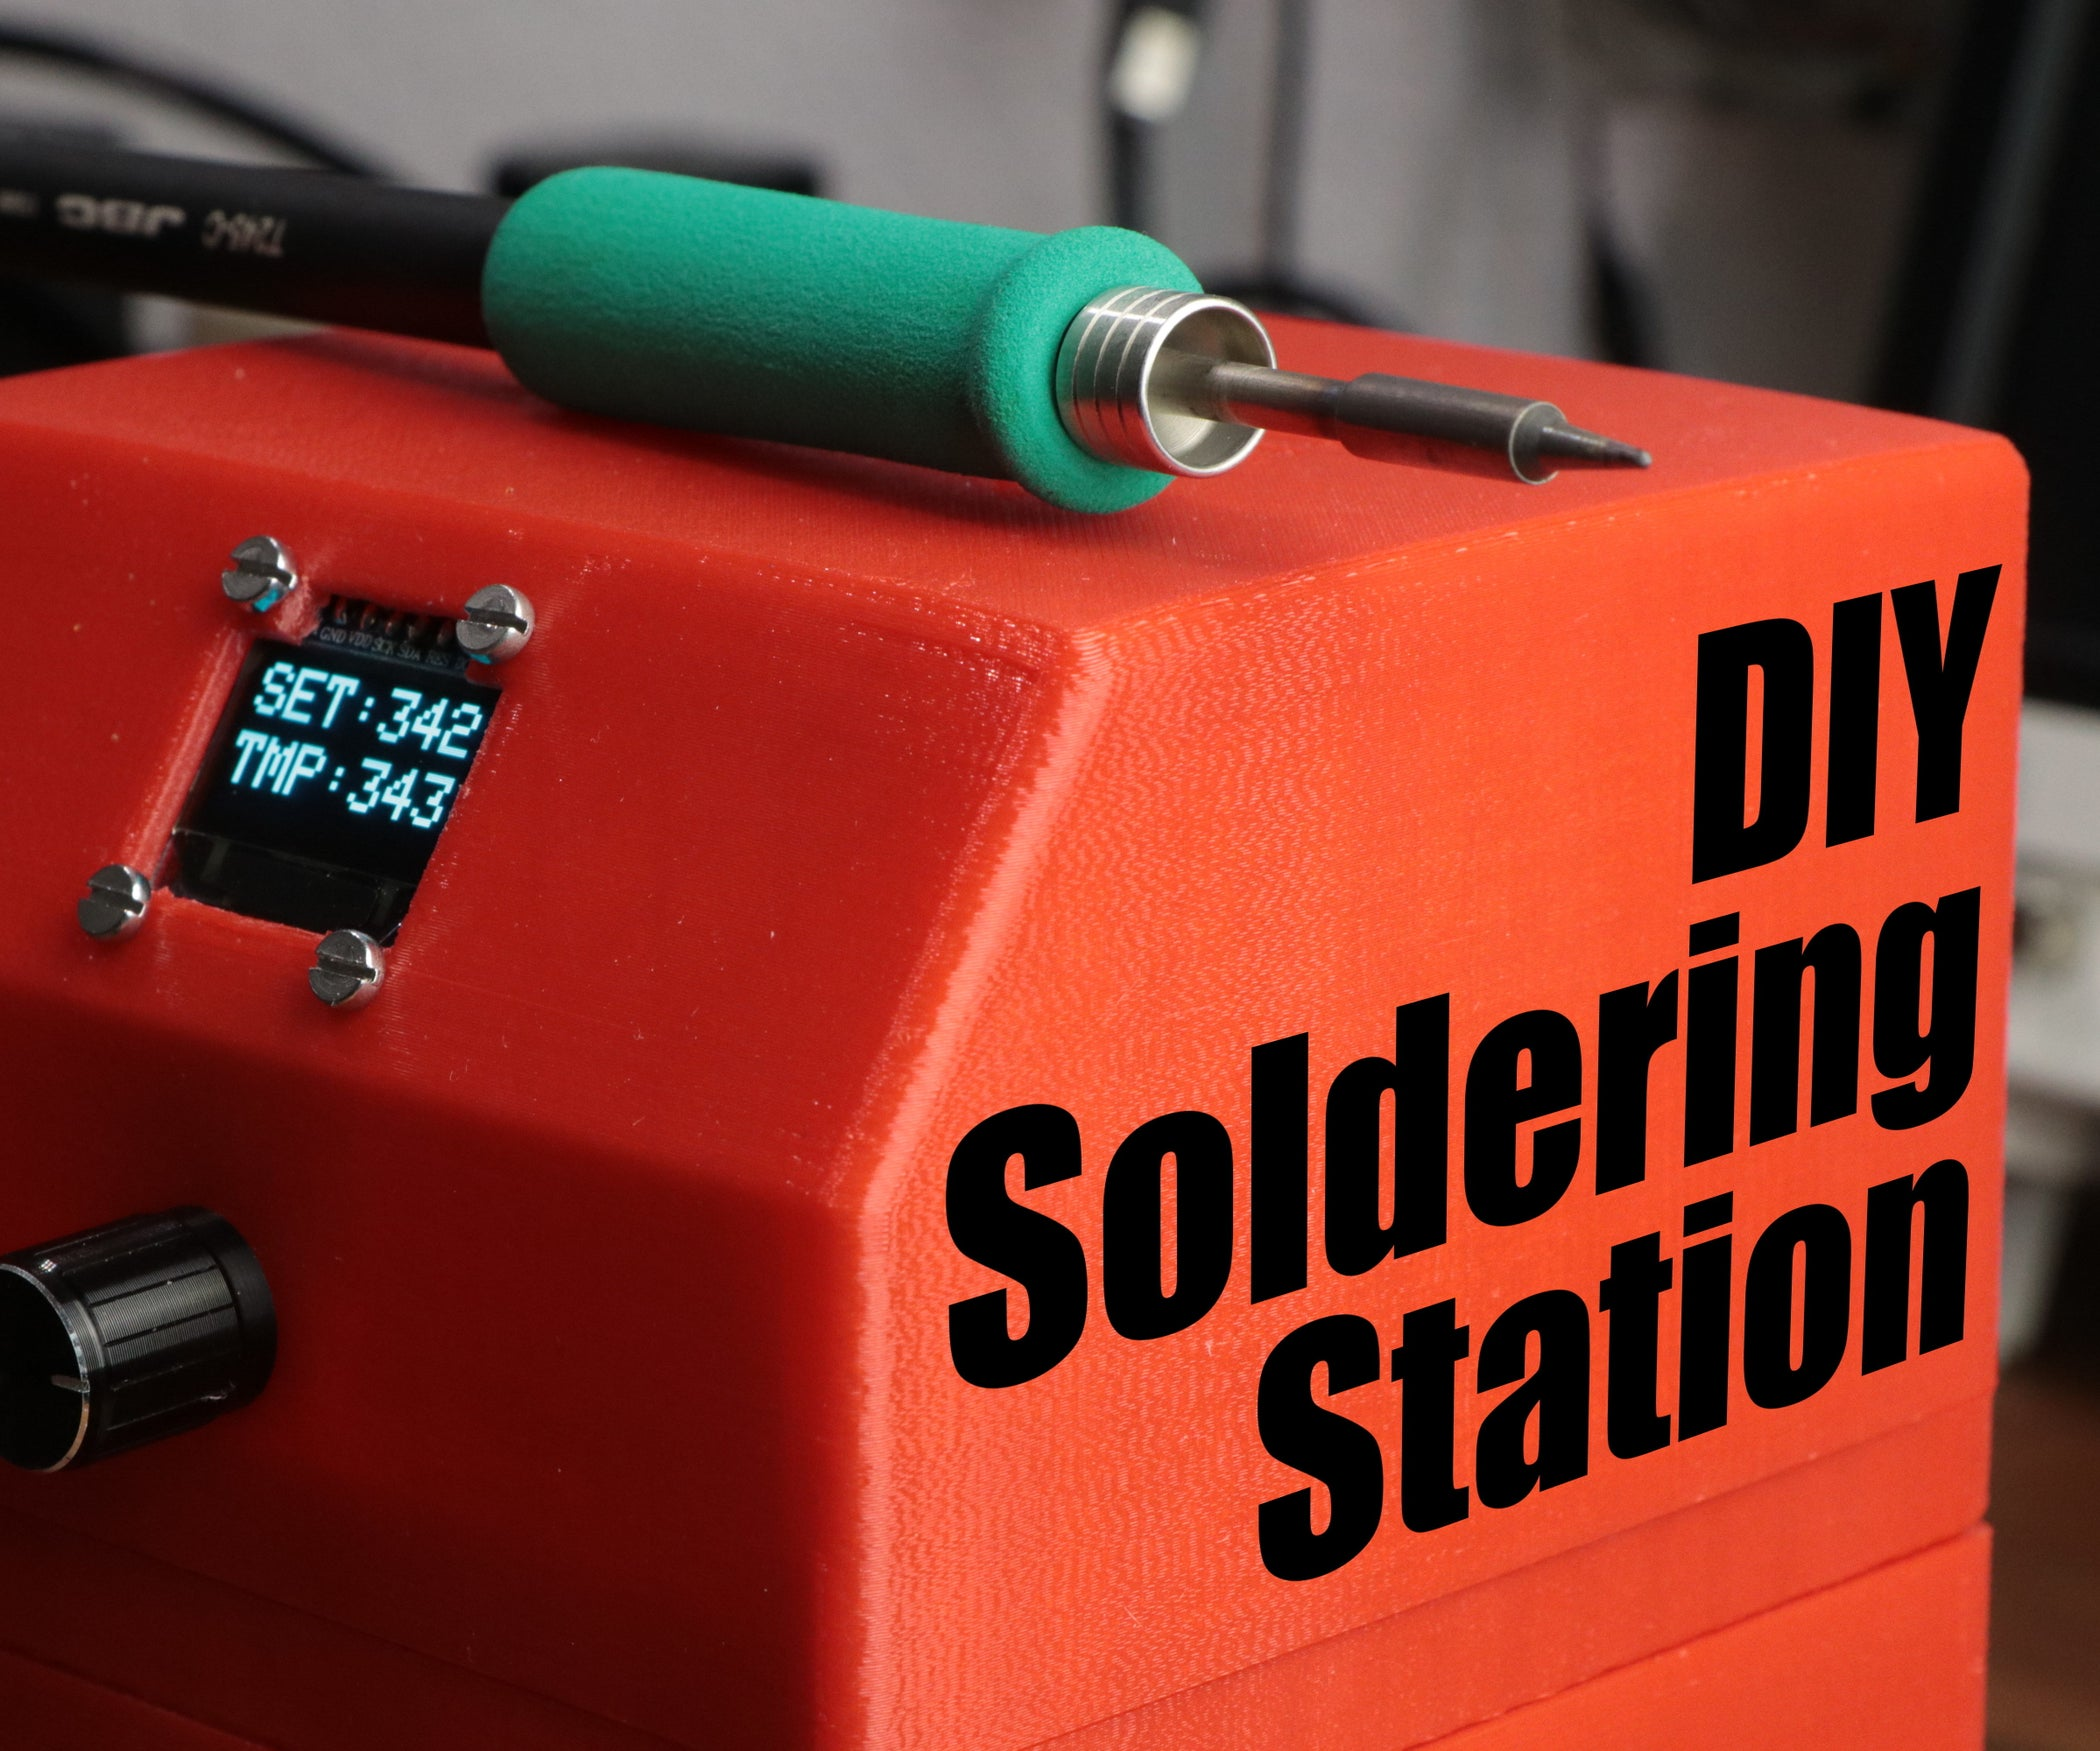 Diy Arduino Soldering Station 6 Steps With Pictures How To Build Temperature Controlled Iron